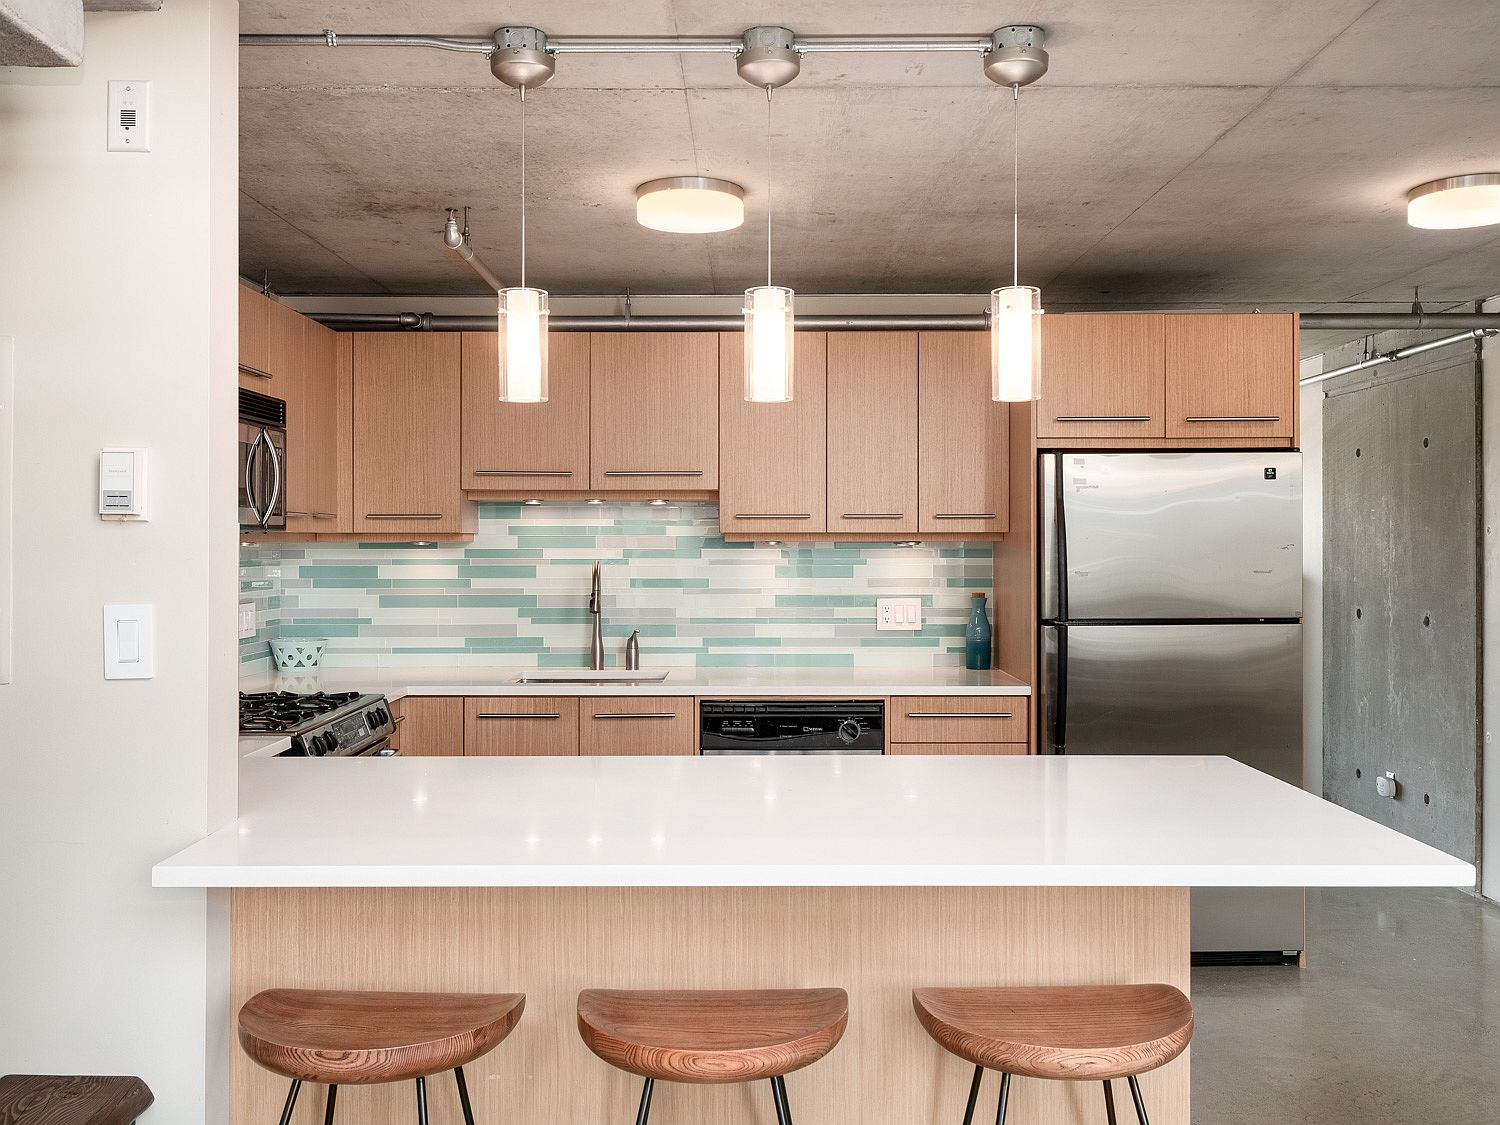 Backsplash adds color to the kitchen in an understated fashion